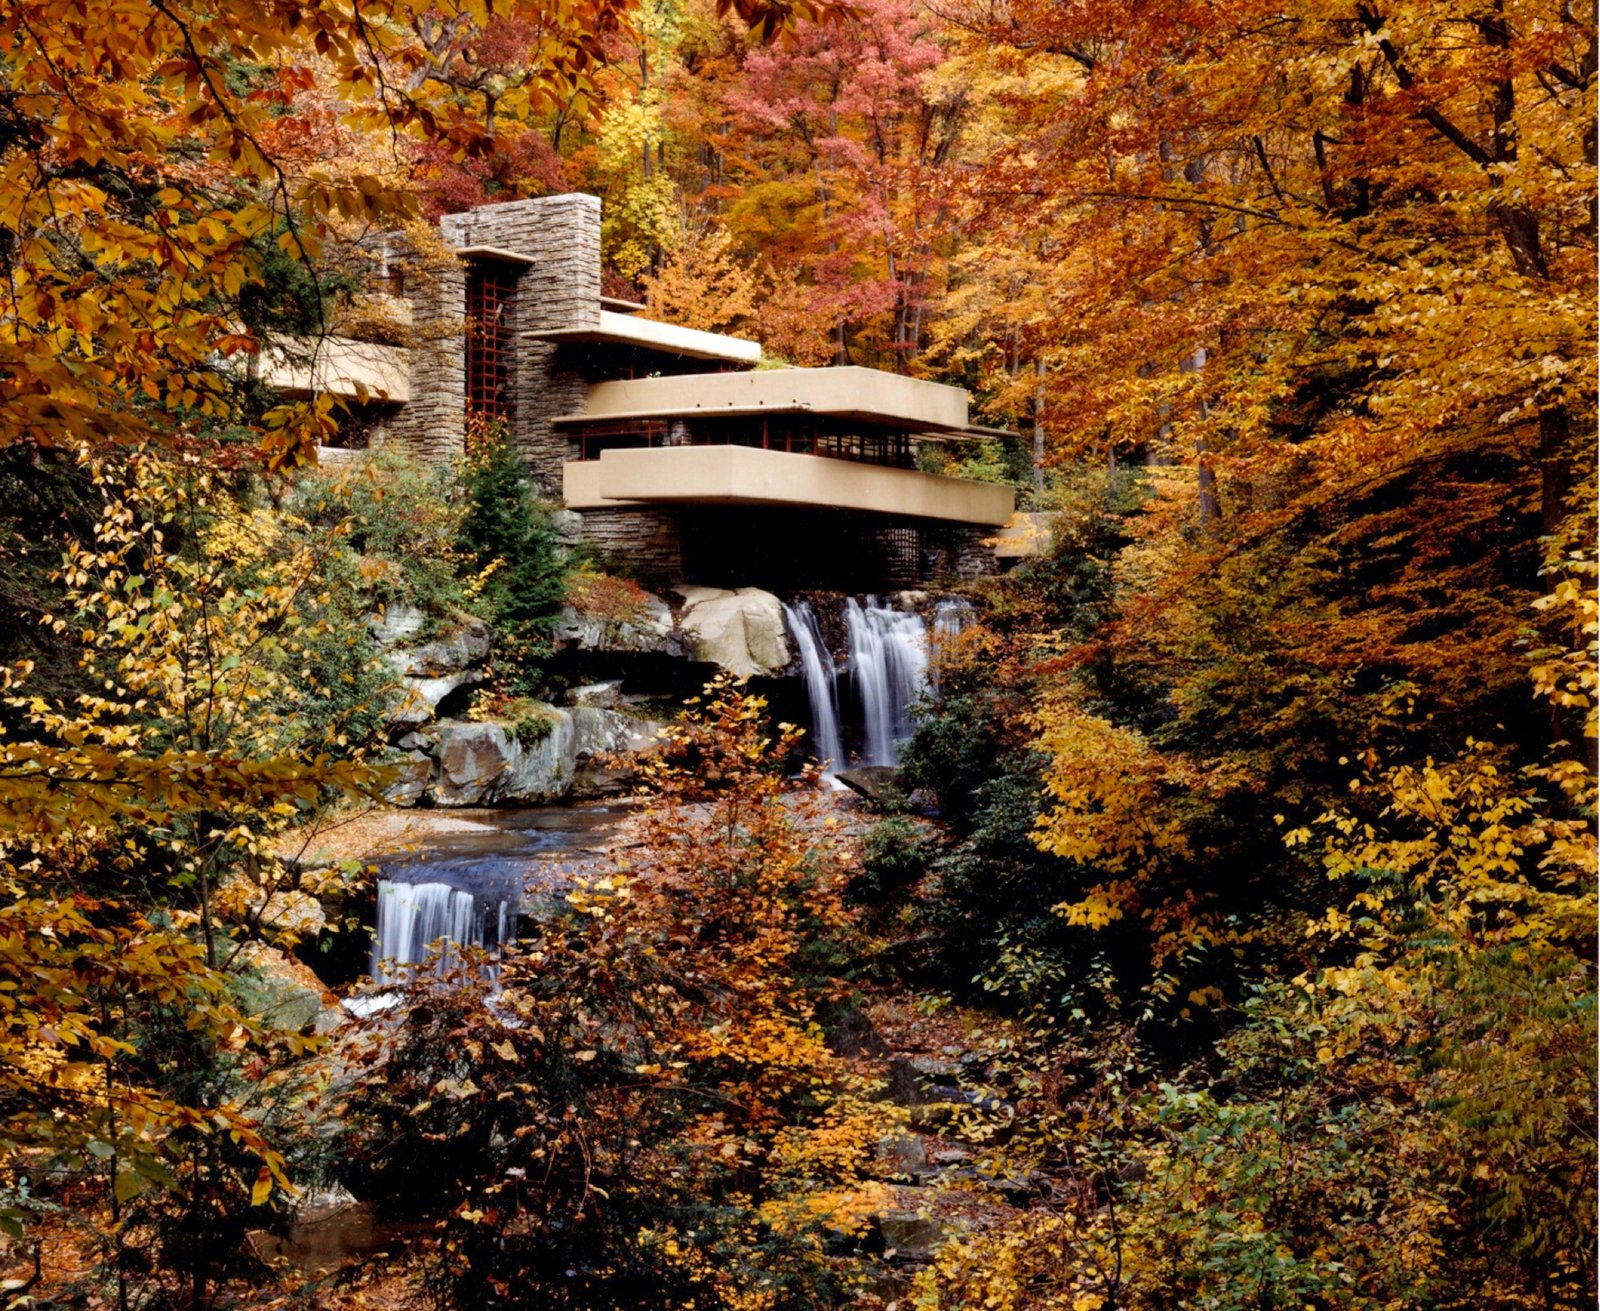 8 Frank Lloyd Wright Buildings Vying For UNESCO World Heritage Status